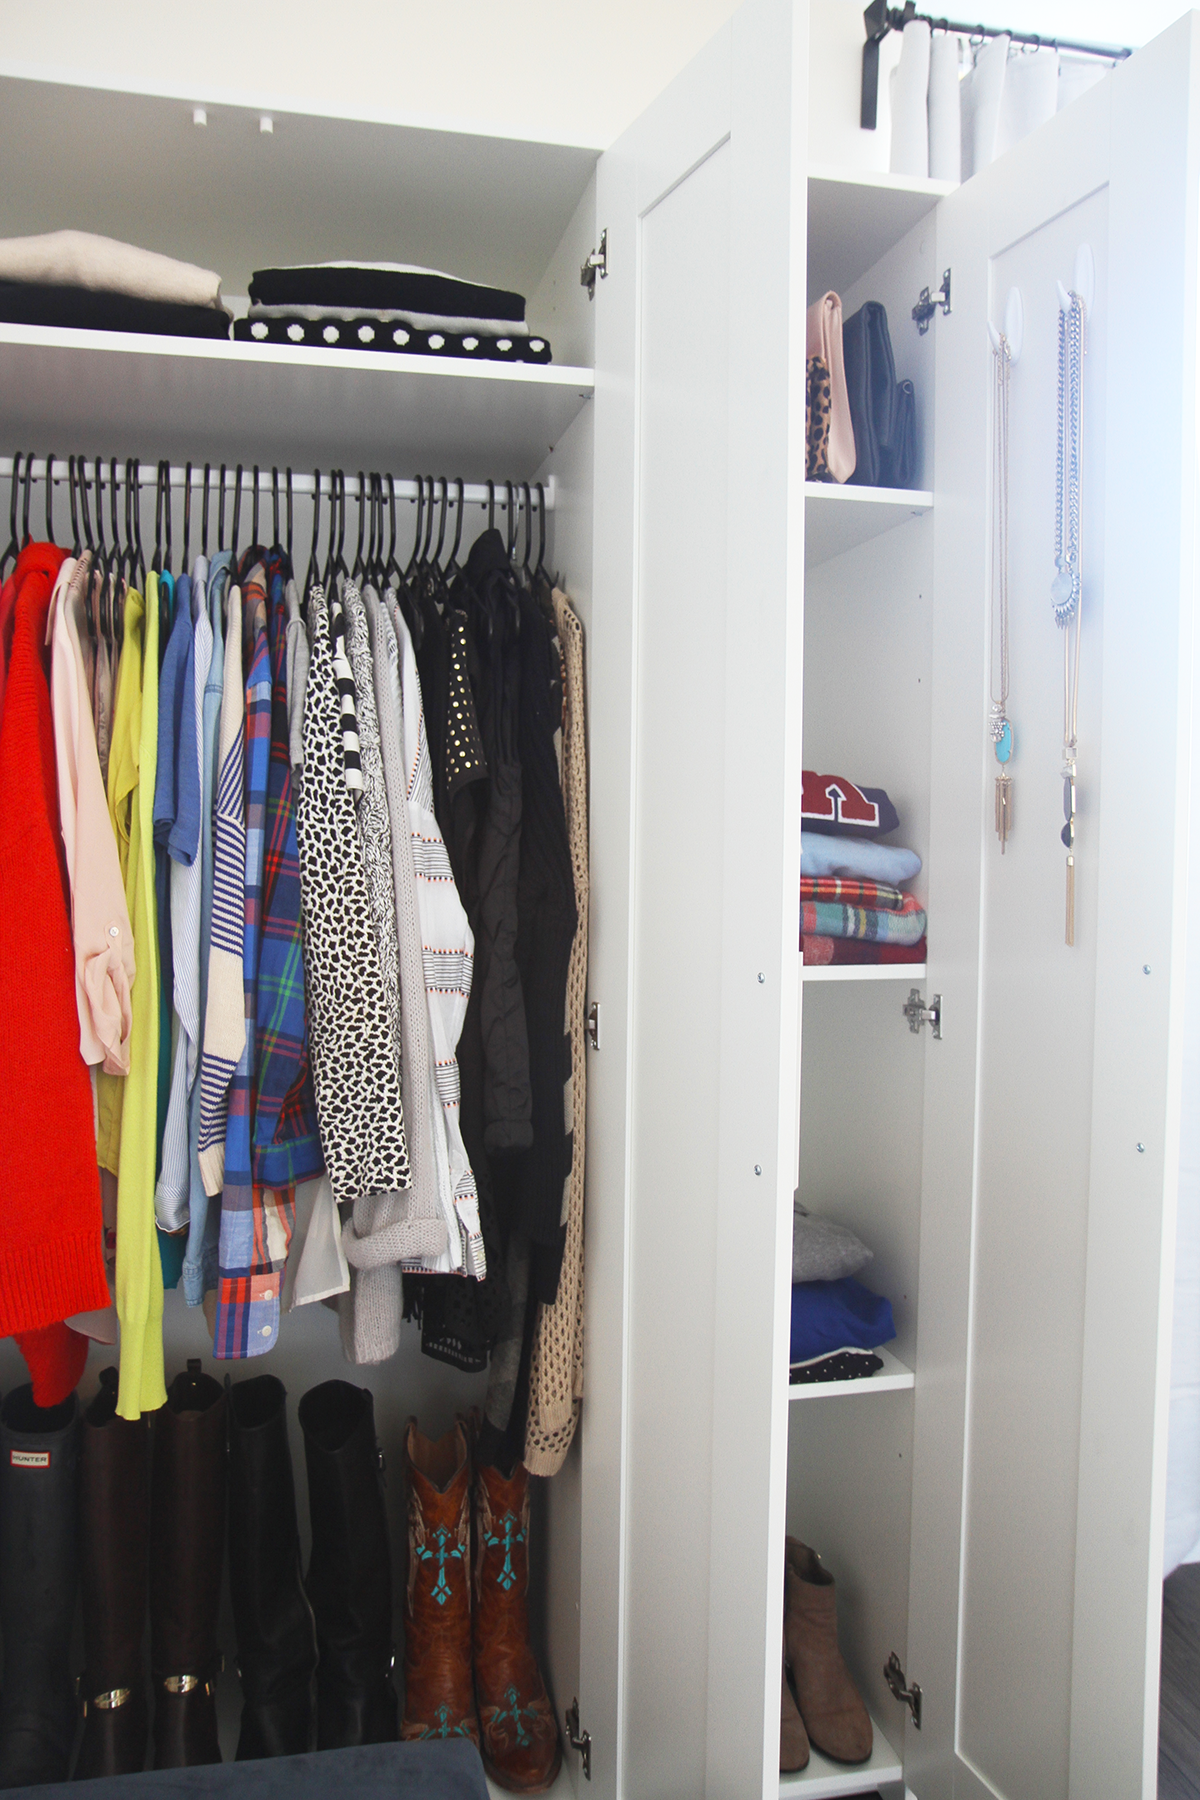 BRIMNES IKEA Wardrobe For A Studio Apartment | Via Ashley Ella Design |  Colorful + Organized